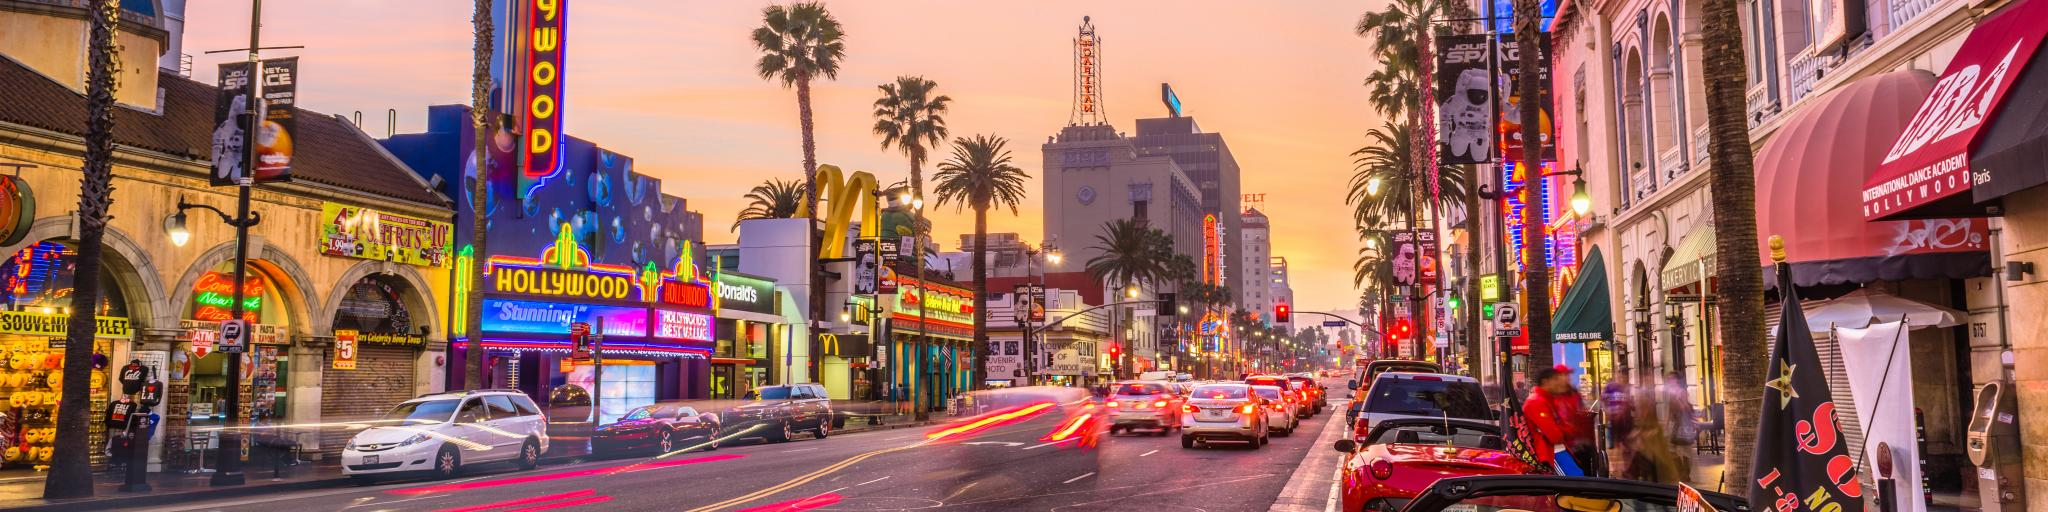 Traffic on Hollywood Boulevard at dusk, Los Angeles, California